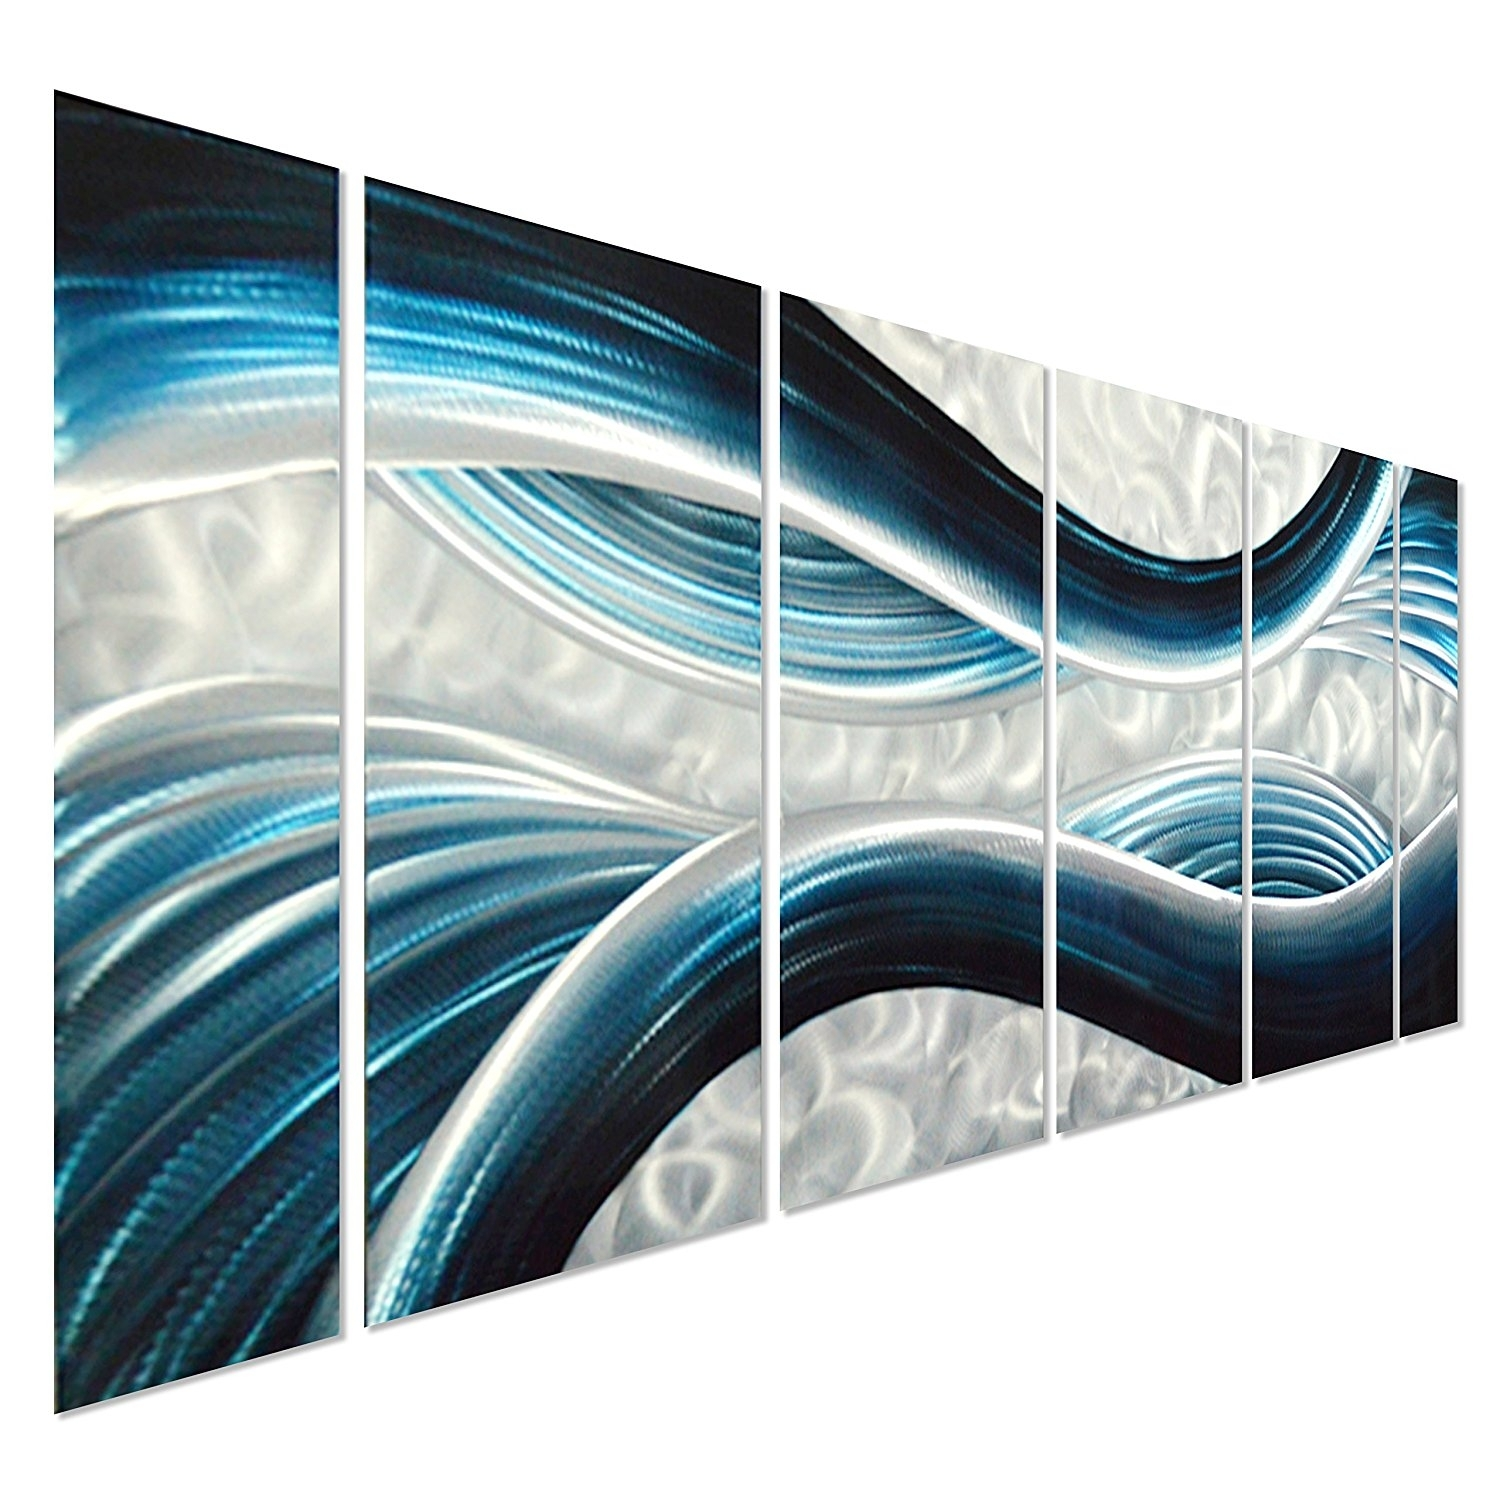 Metal Wall Art Panels Australia A Decal Amazon Blue Desire Large Intended For 2018 Abstract Ocean Wall Art (View 12 of 20)